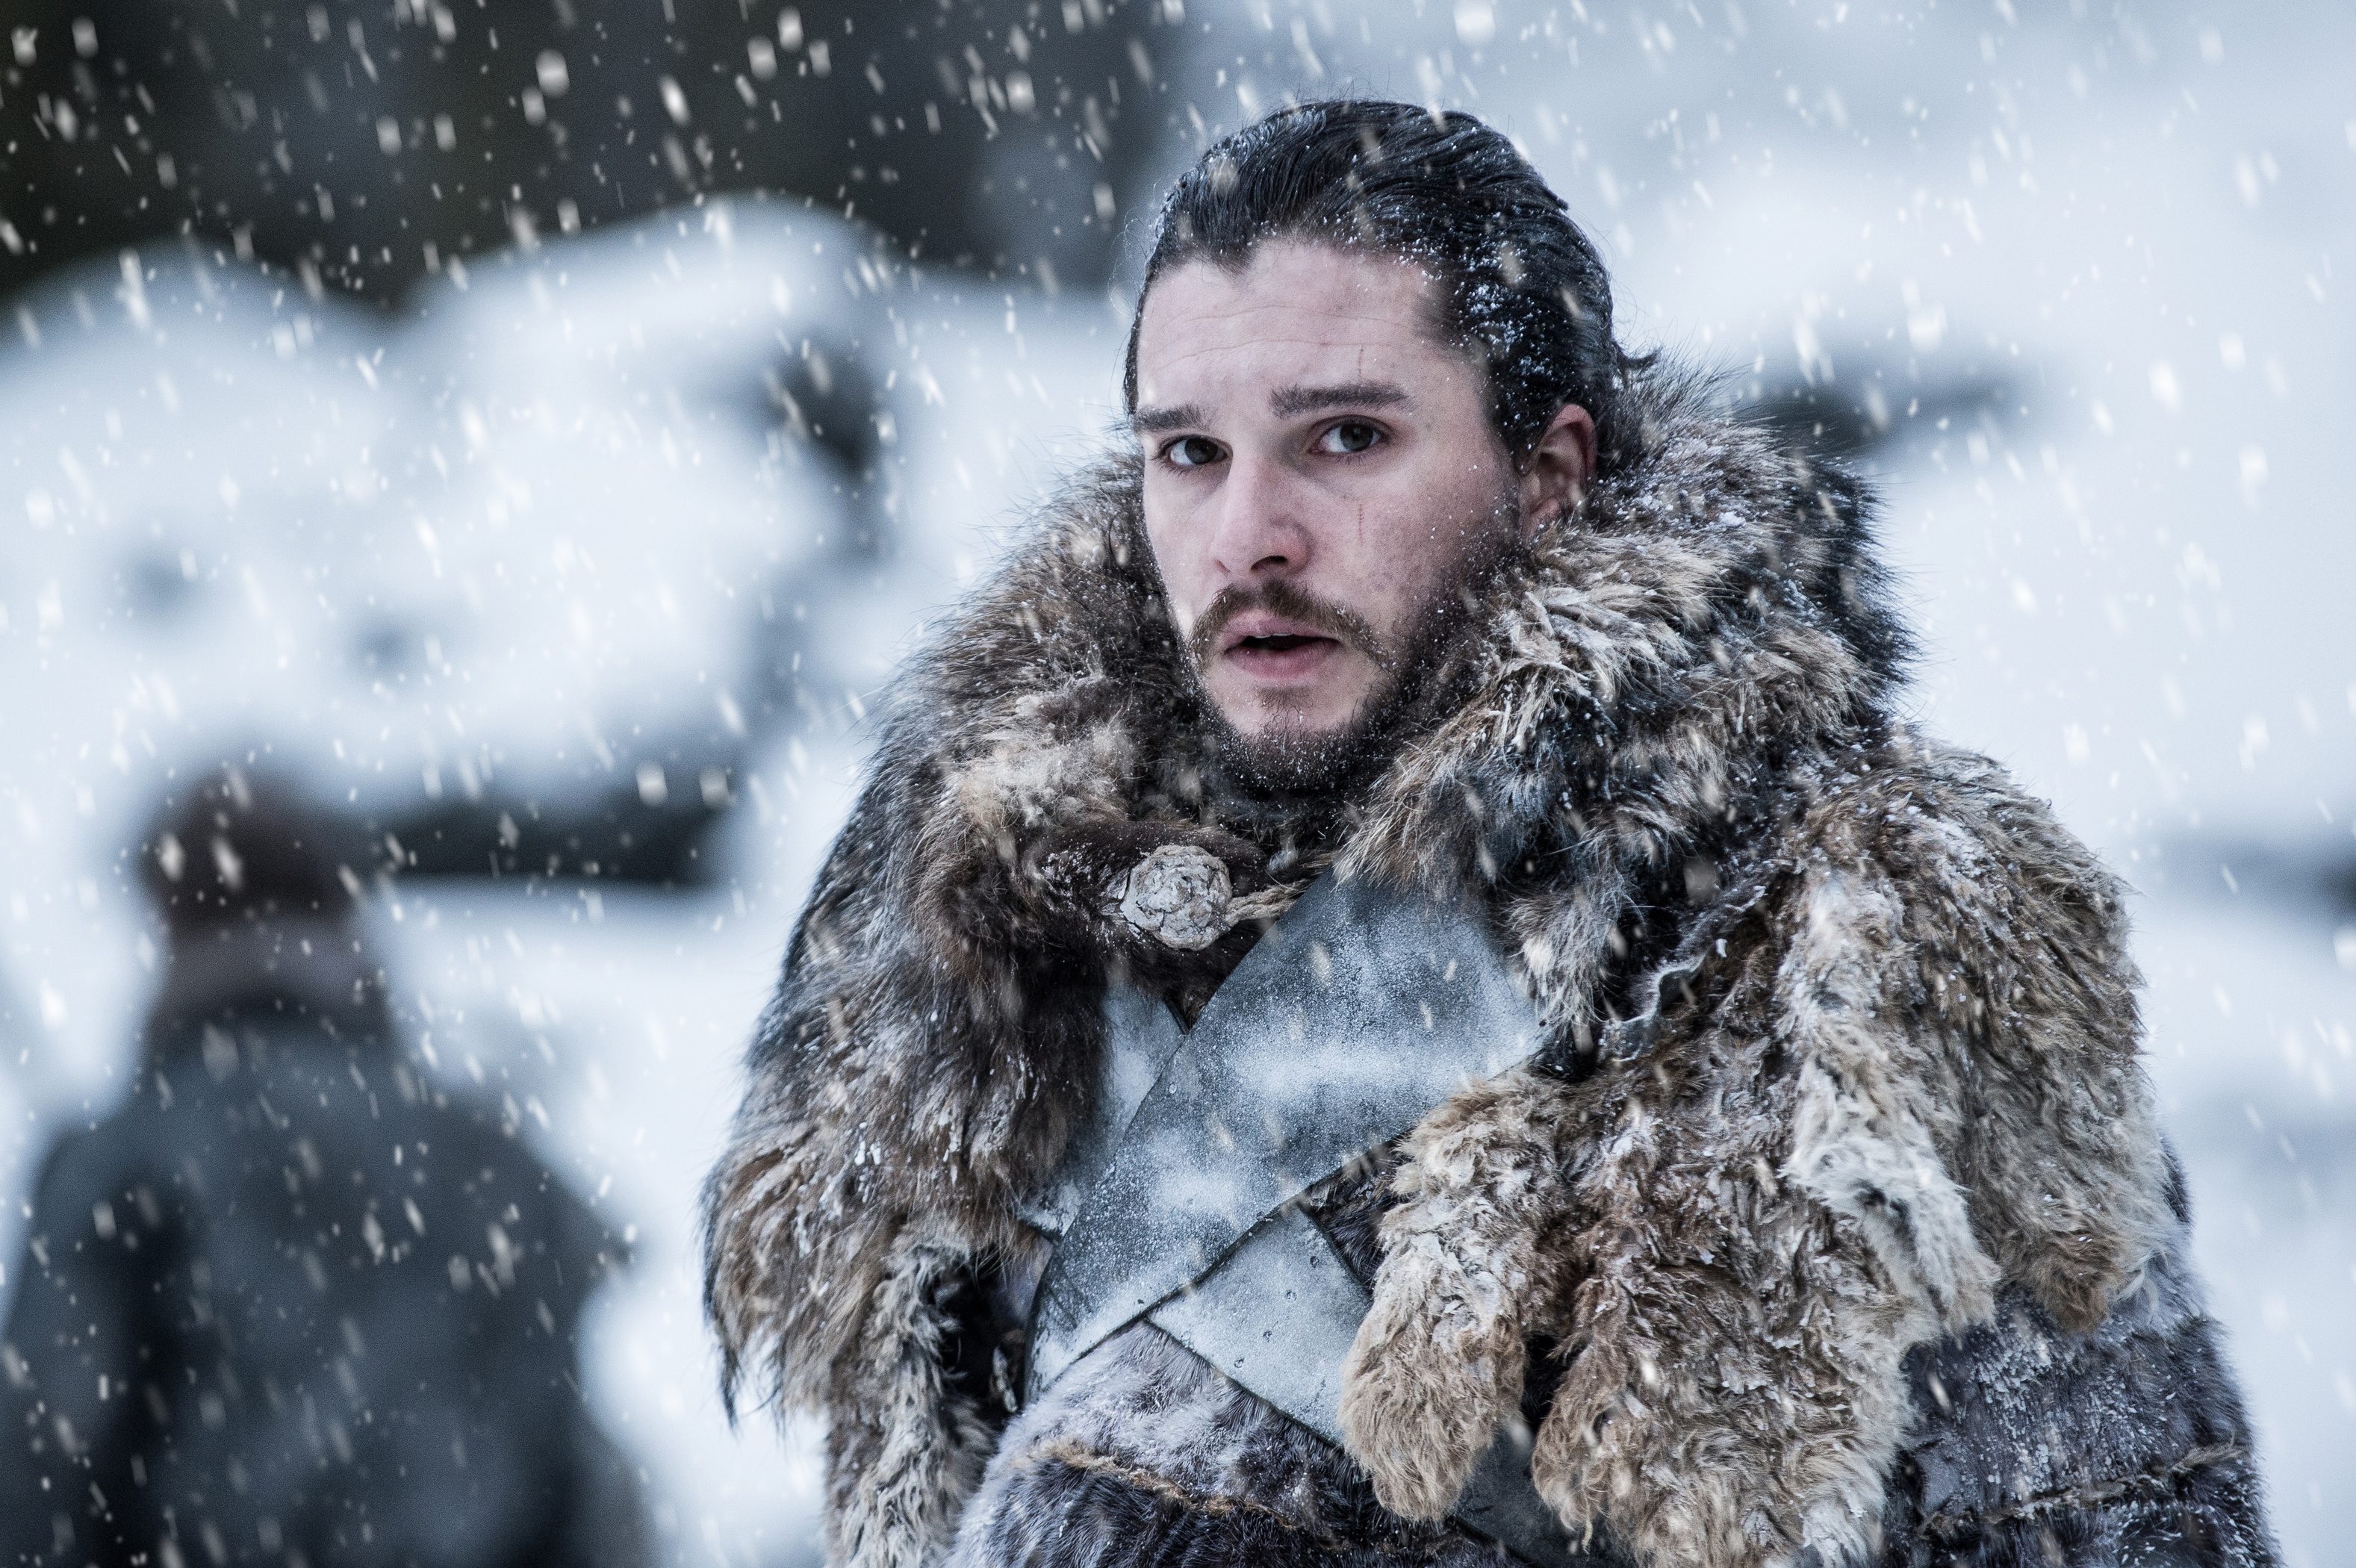 game of thrones s07e06 subtitles download